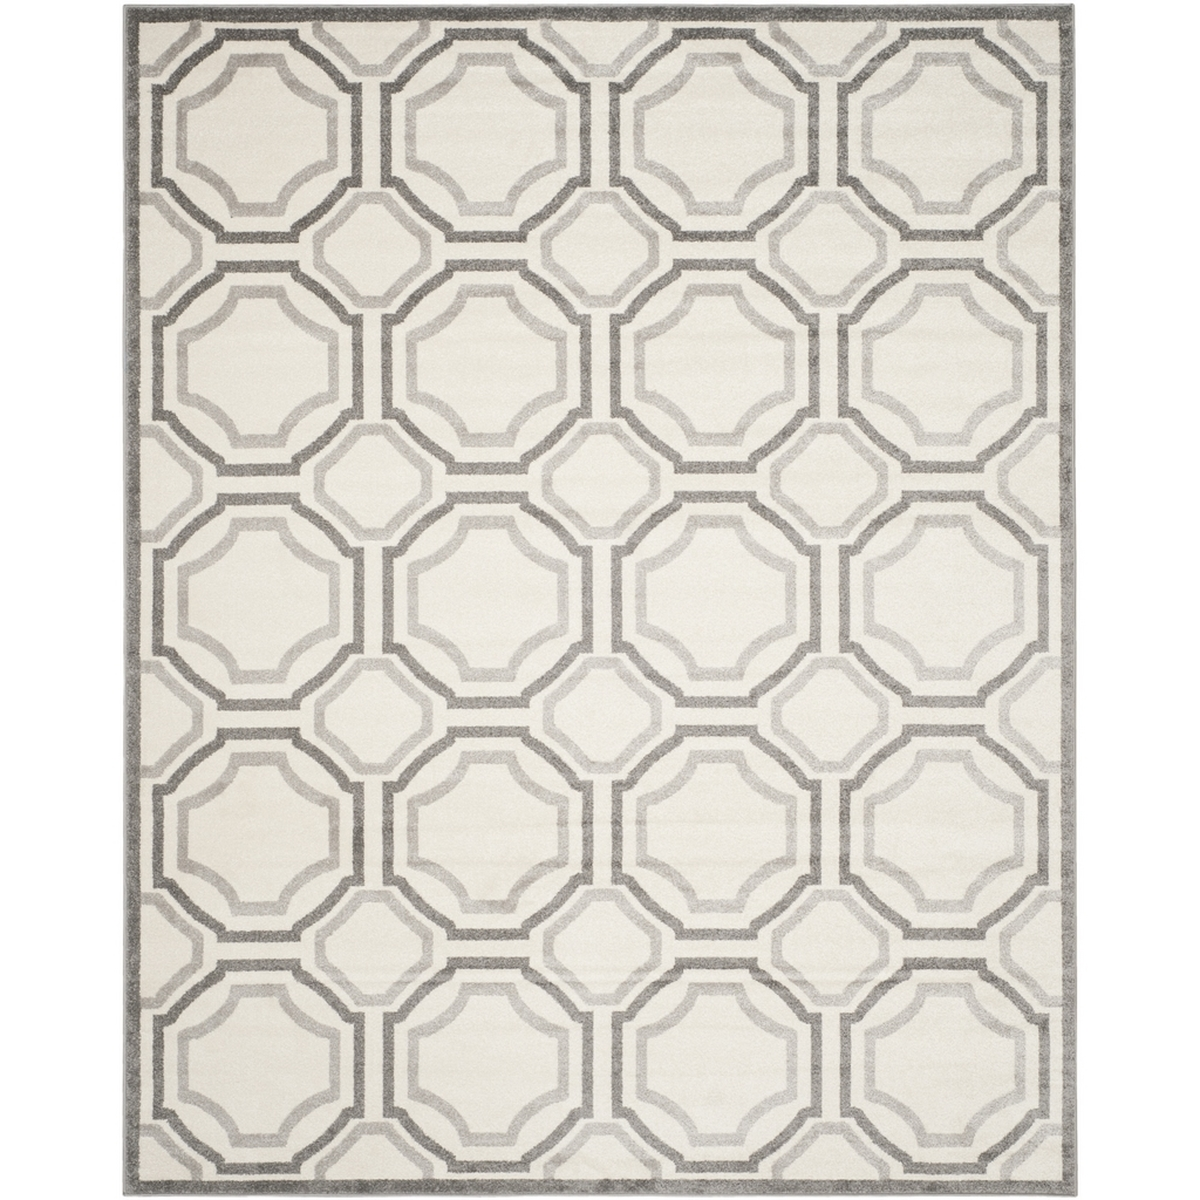 Rug Amt411e Amherst Area Rugs By Safavieh